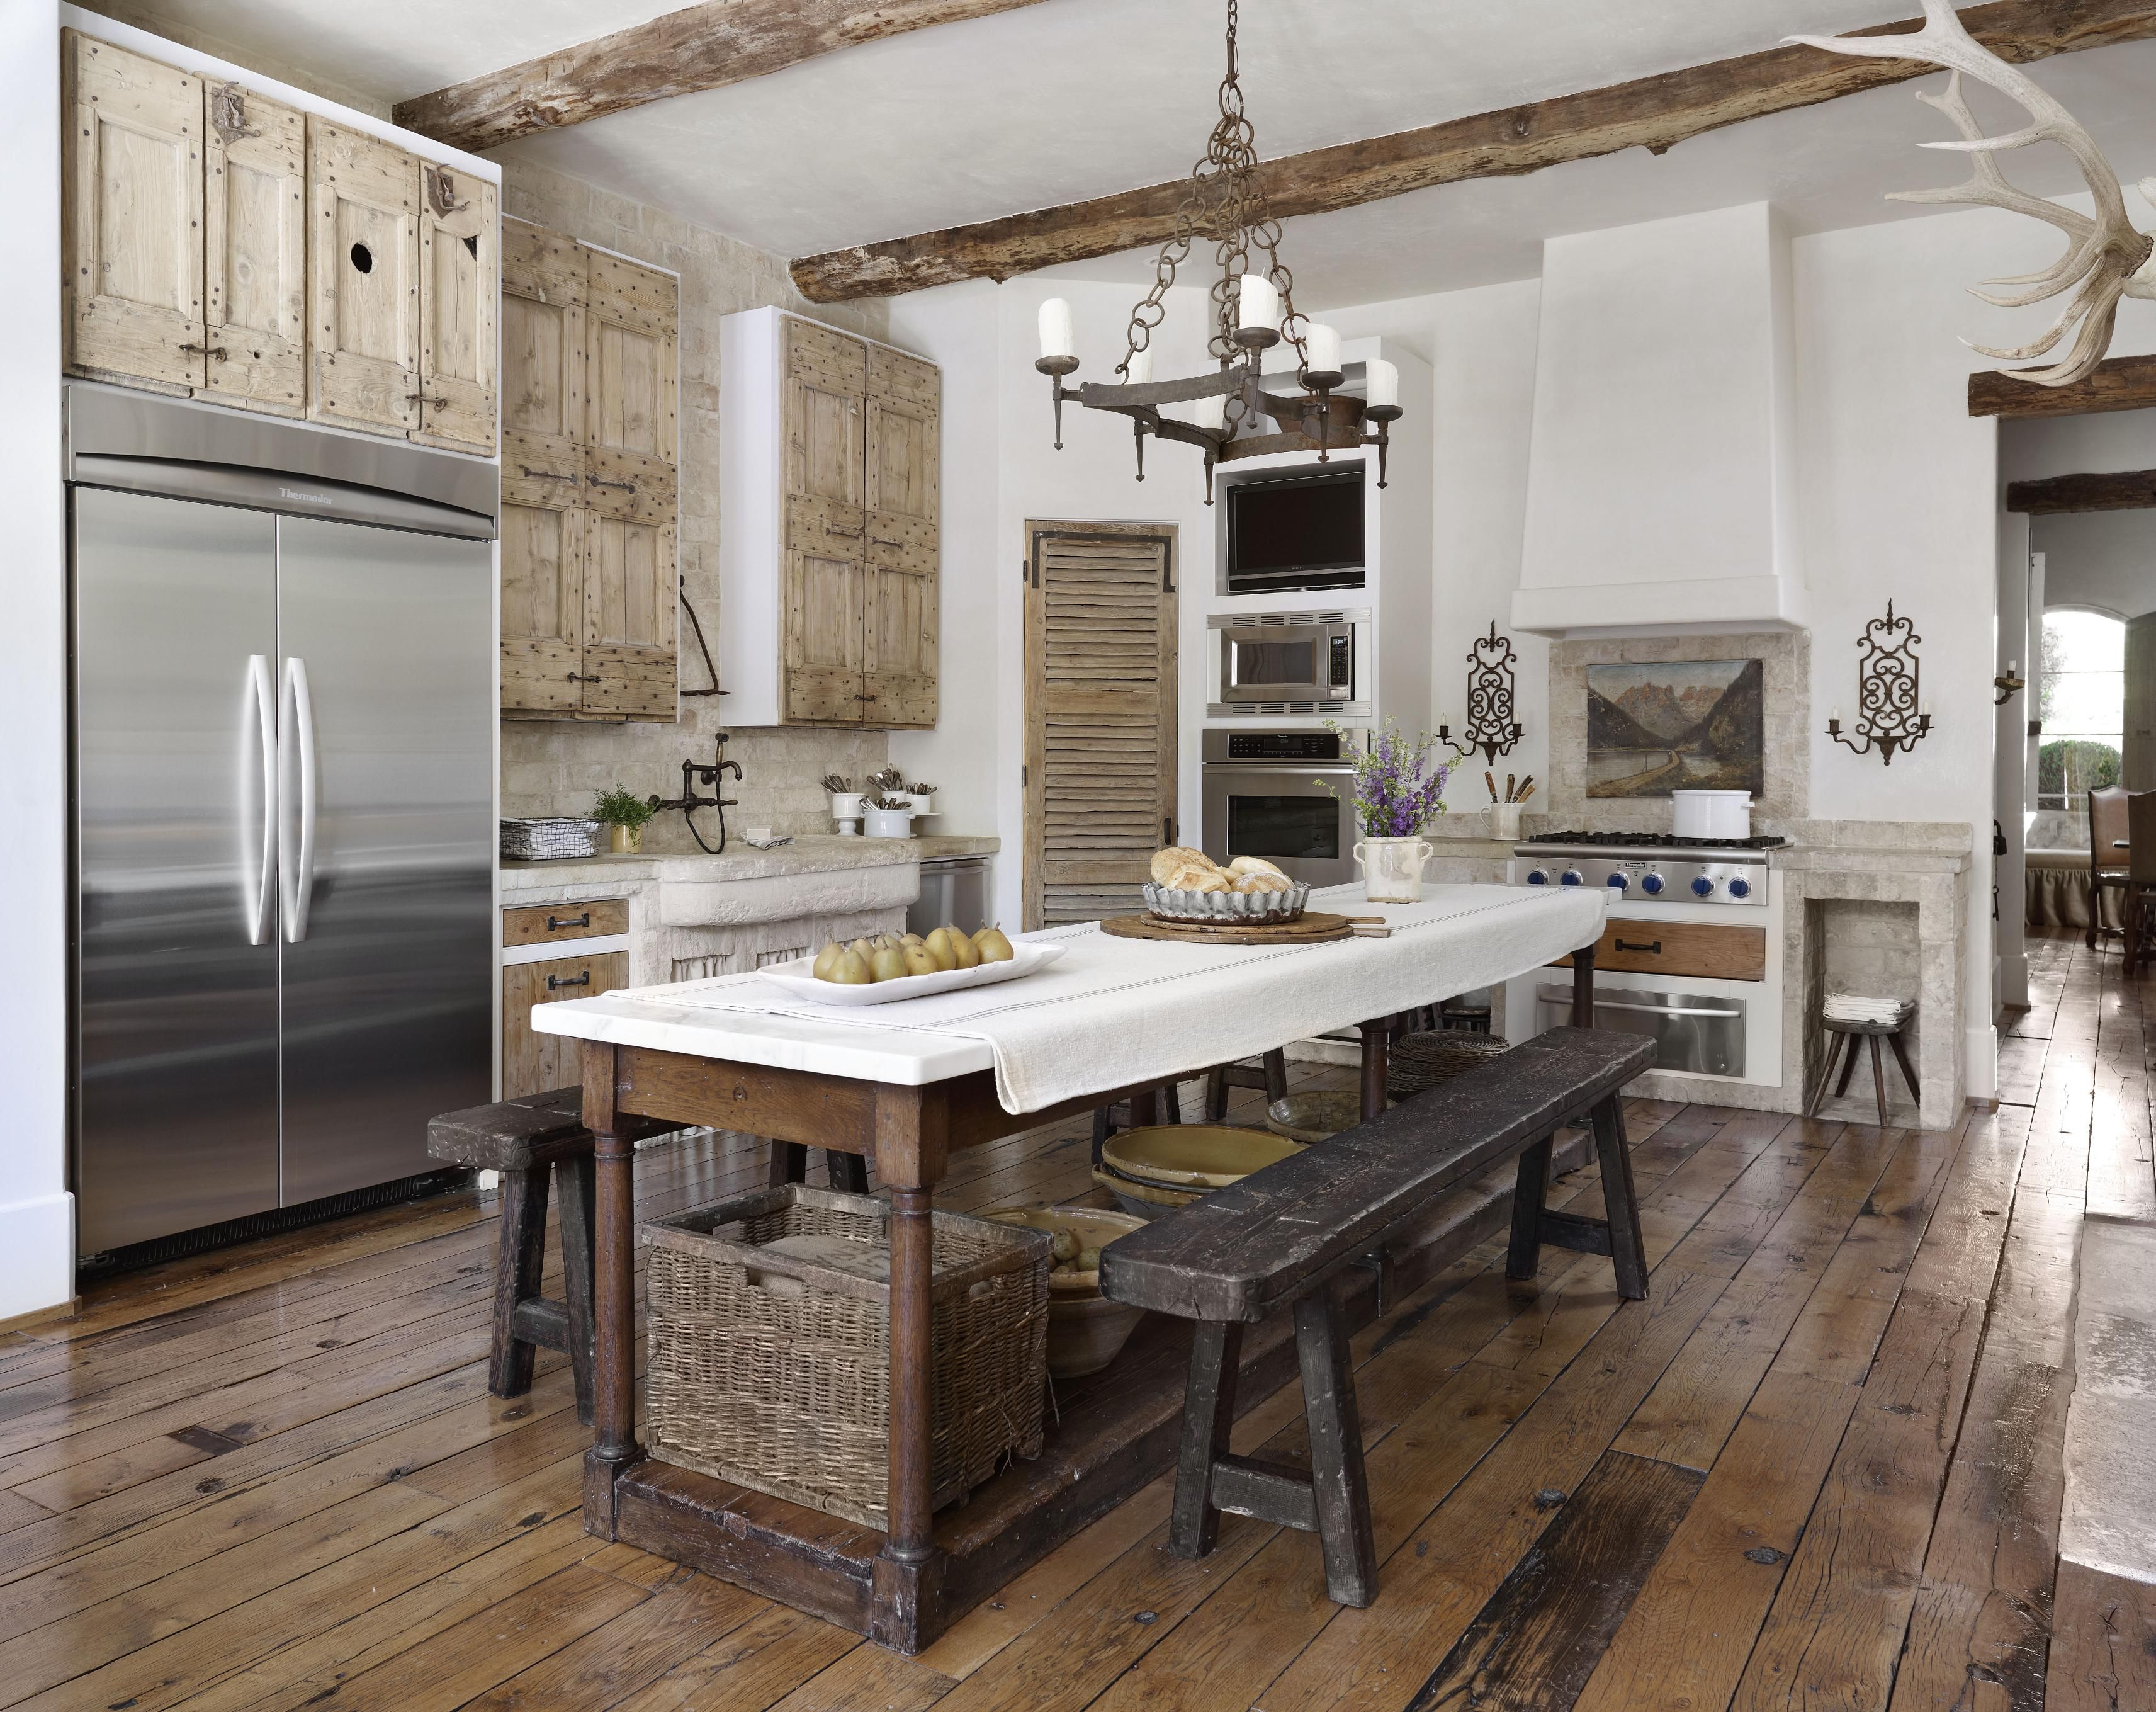 country french kitchens french country kitchens country kitchen designs rustic country kitchens on kitchen remodel french country id=52686